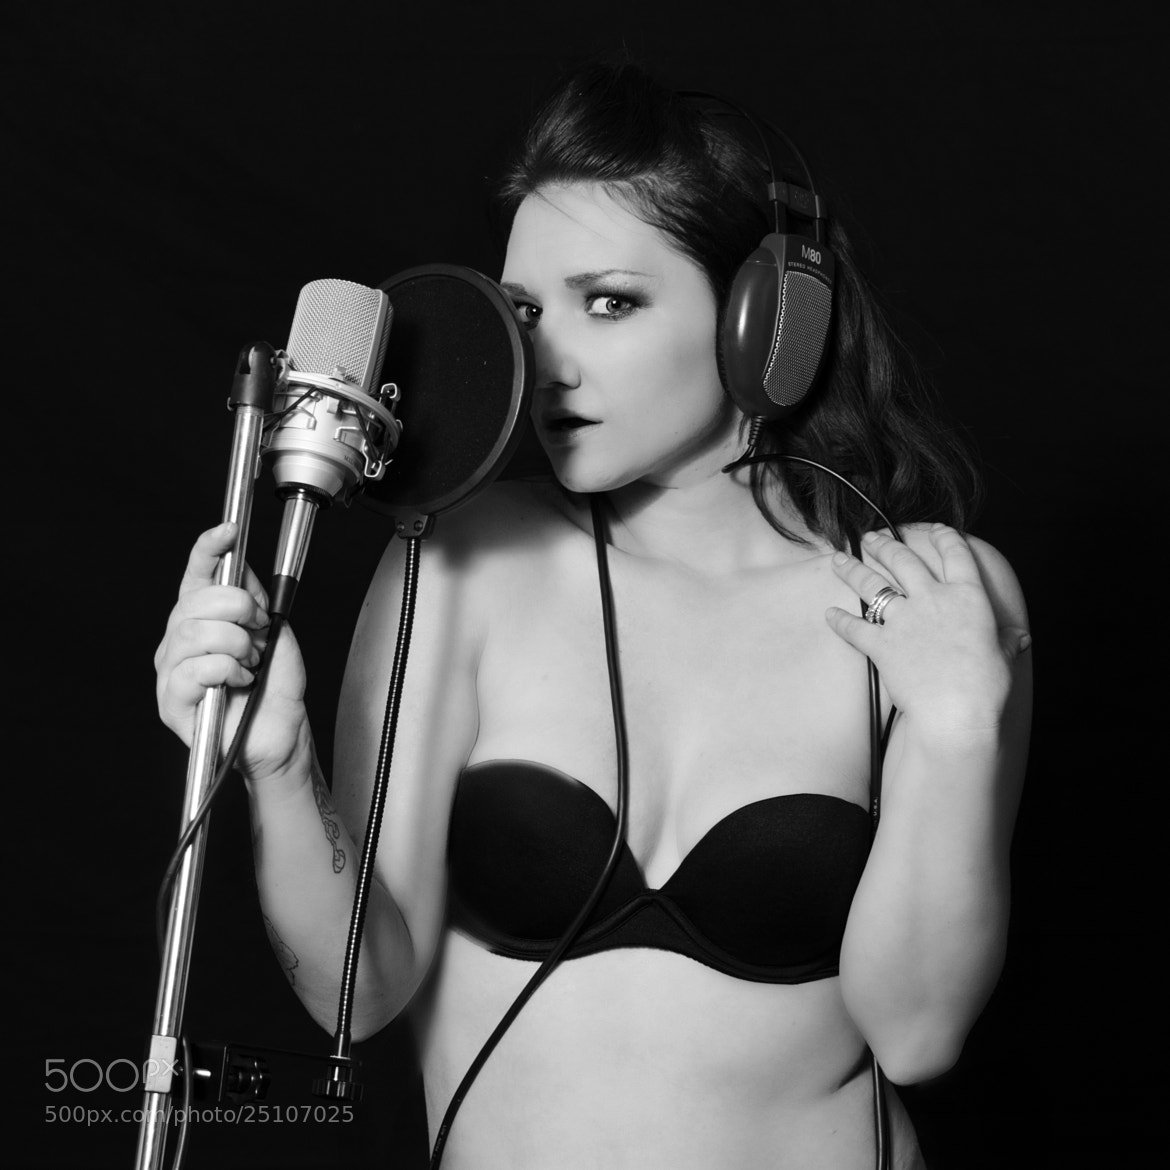 Photograph Erin on the Mic by Chad Estes on 500px